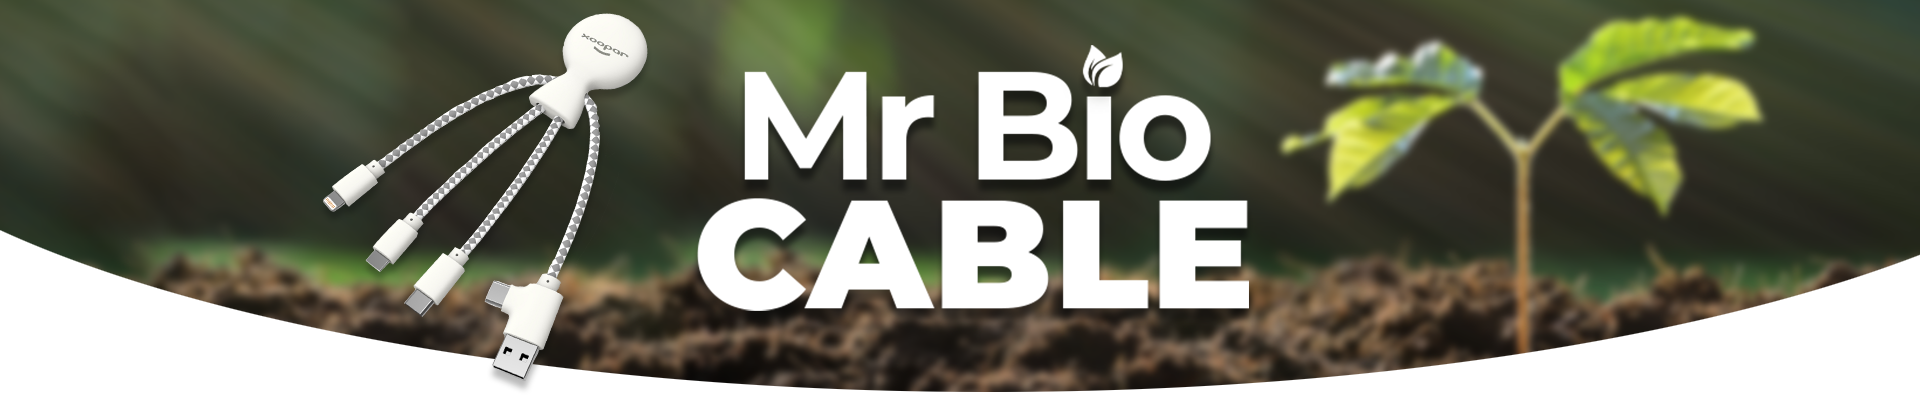 Mr-Bio-Cable-header.png